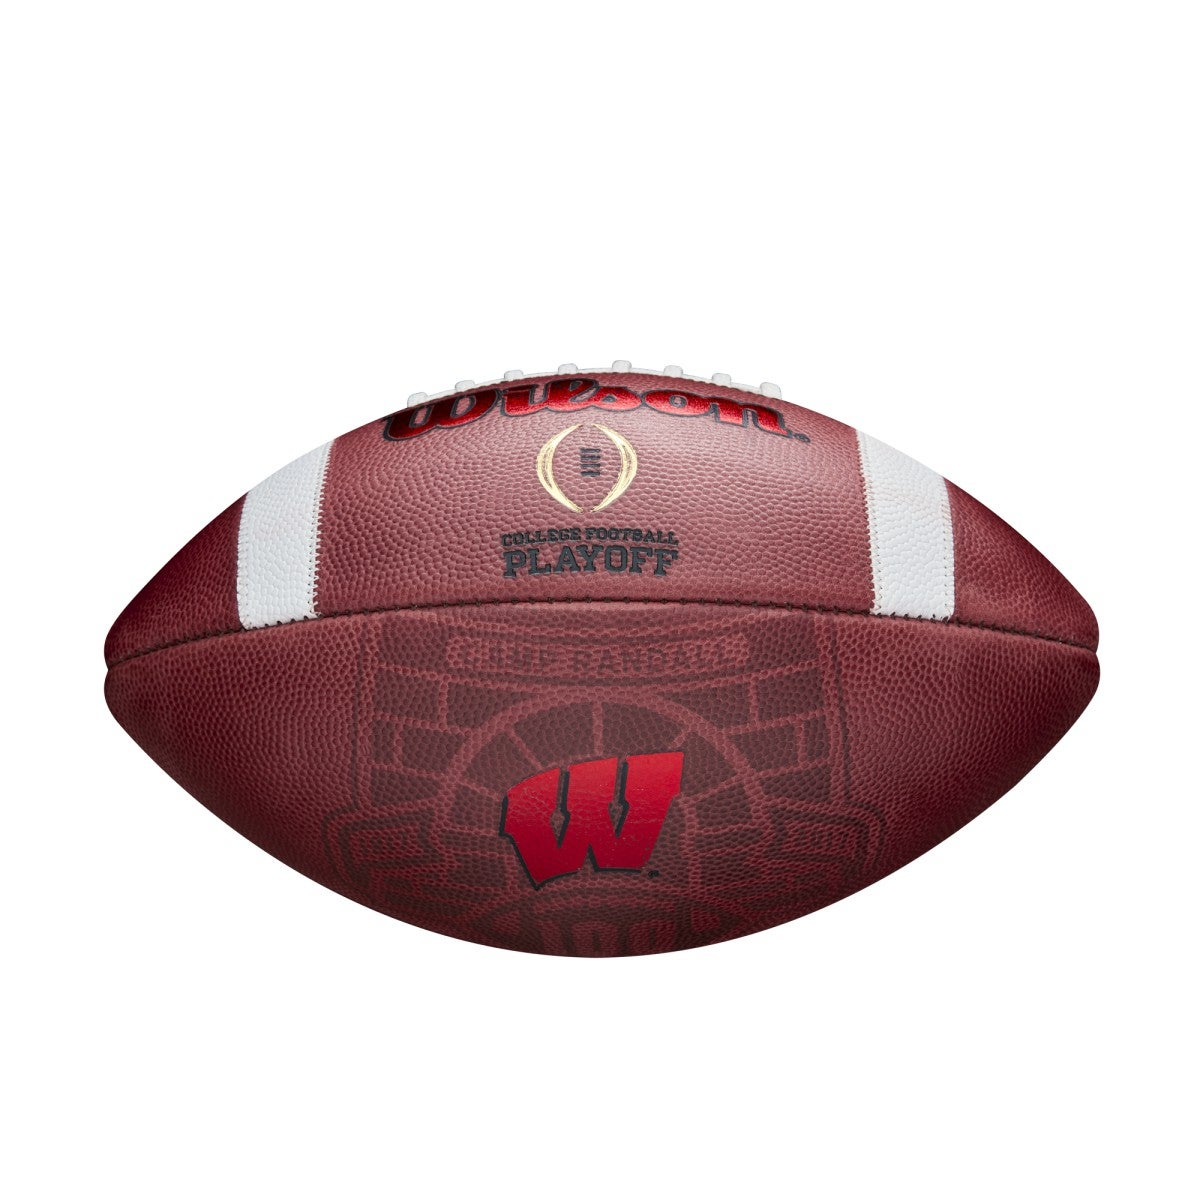 ? College Football Playoff Football - Wisconsin State Watermark